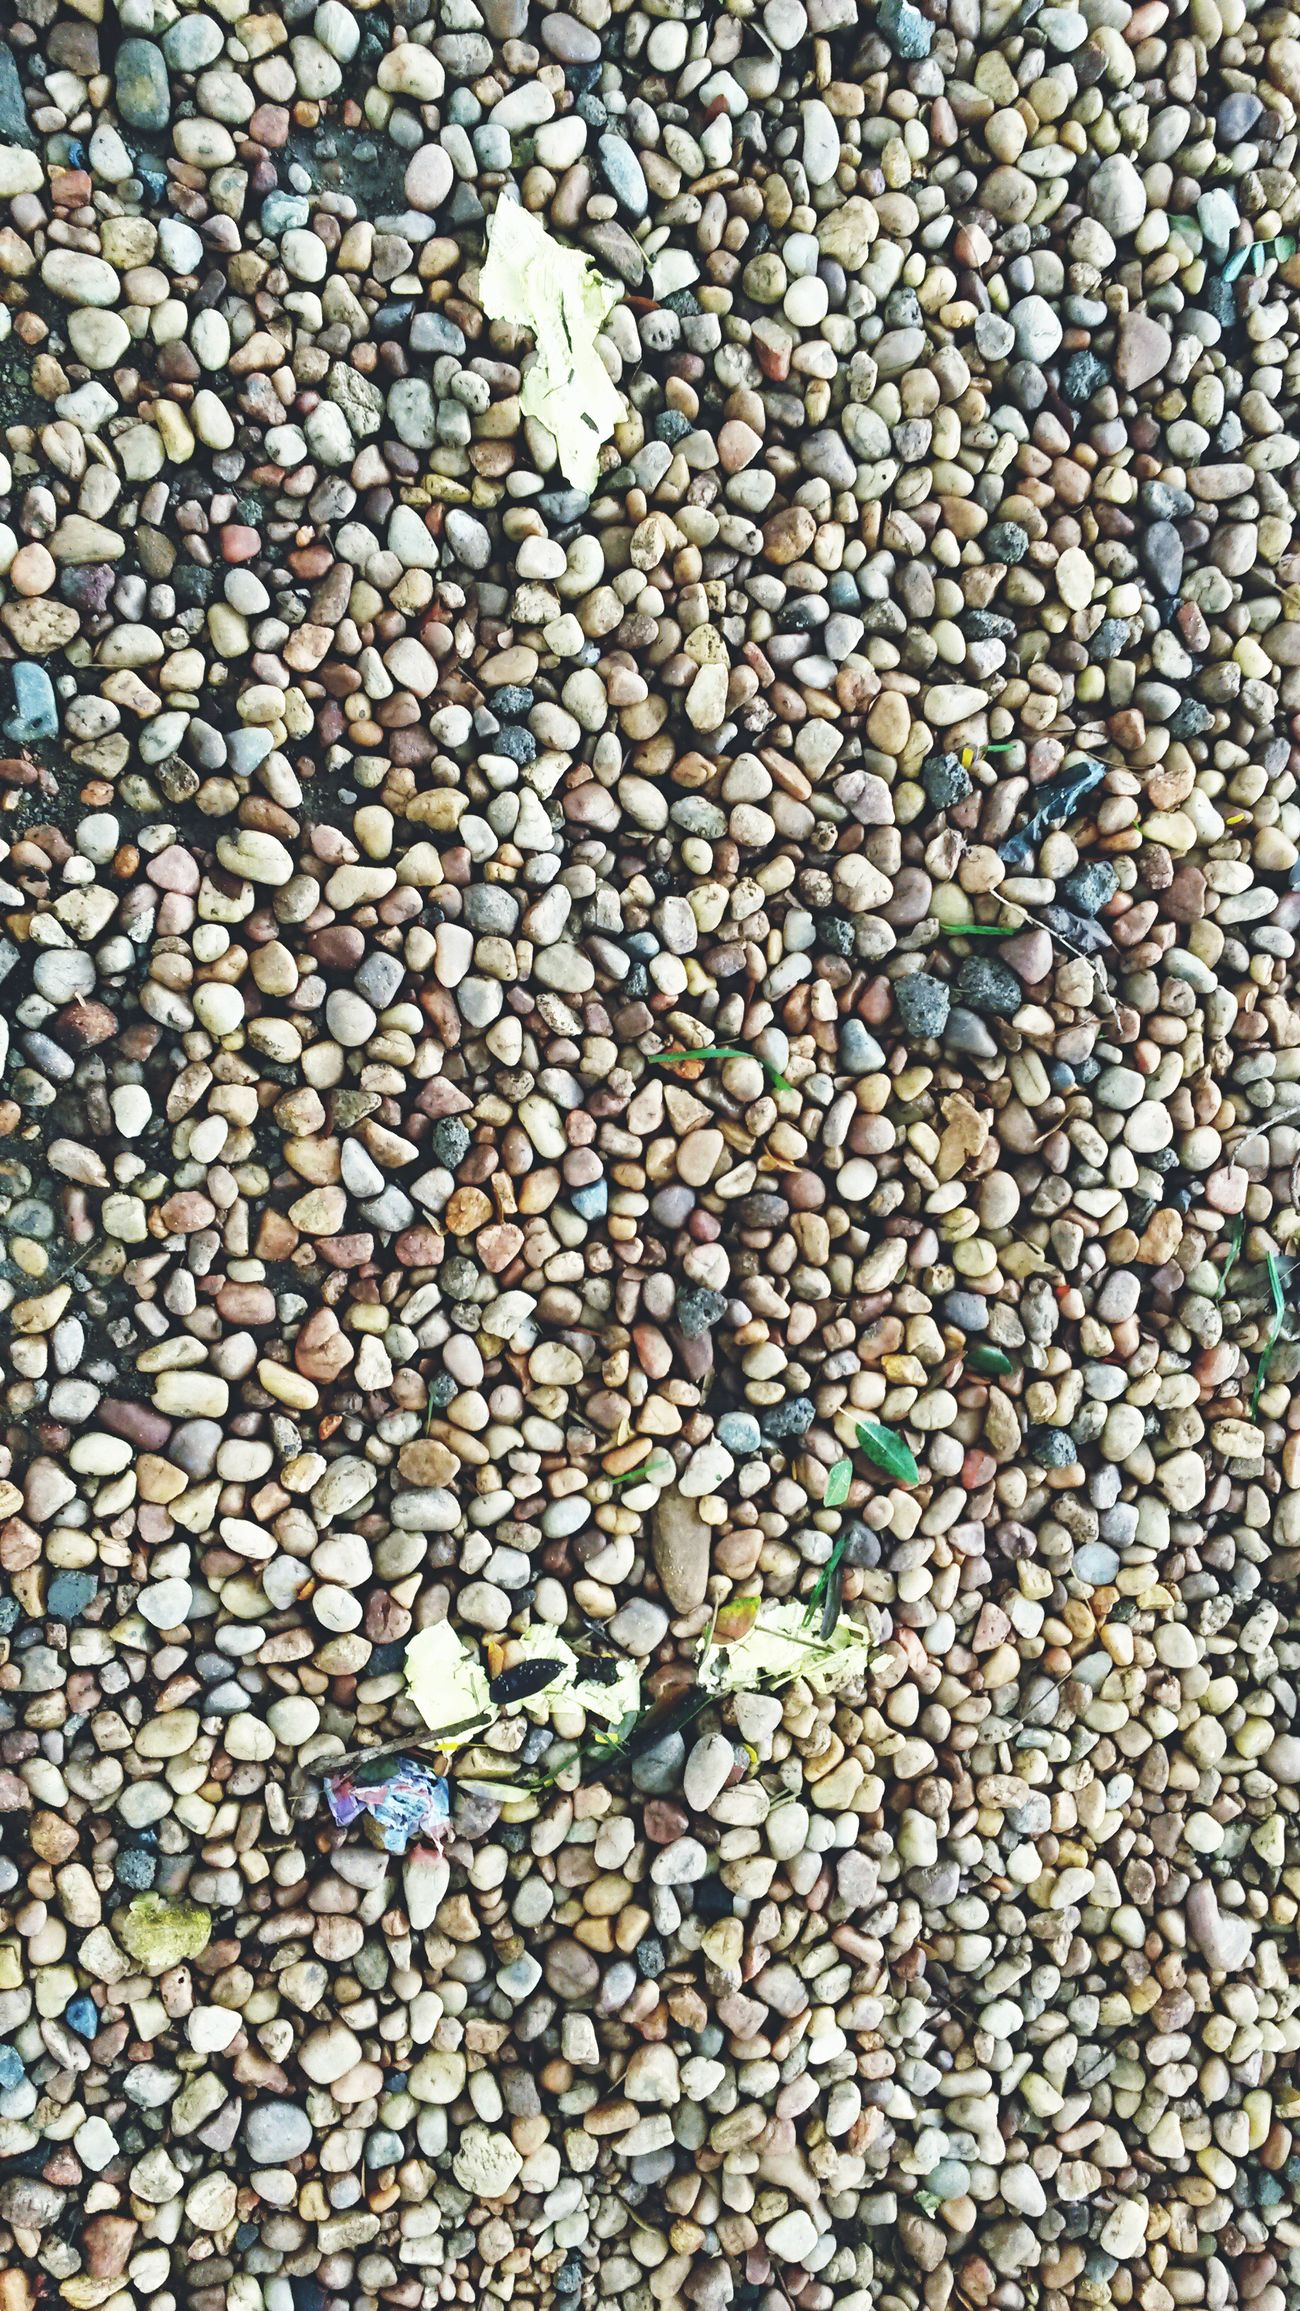 IPhone Click Large Group Of Objects Nature Abundance No People Outdoors Close-up Picoftheday EyeEm EyeEm Best Shots Remoamalanphotography Remo Amalan Photography Bestoftheday Stones Pebble Worthit Allignment Cool Peace Ground Photooftheday Bye Bye